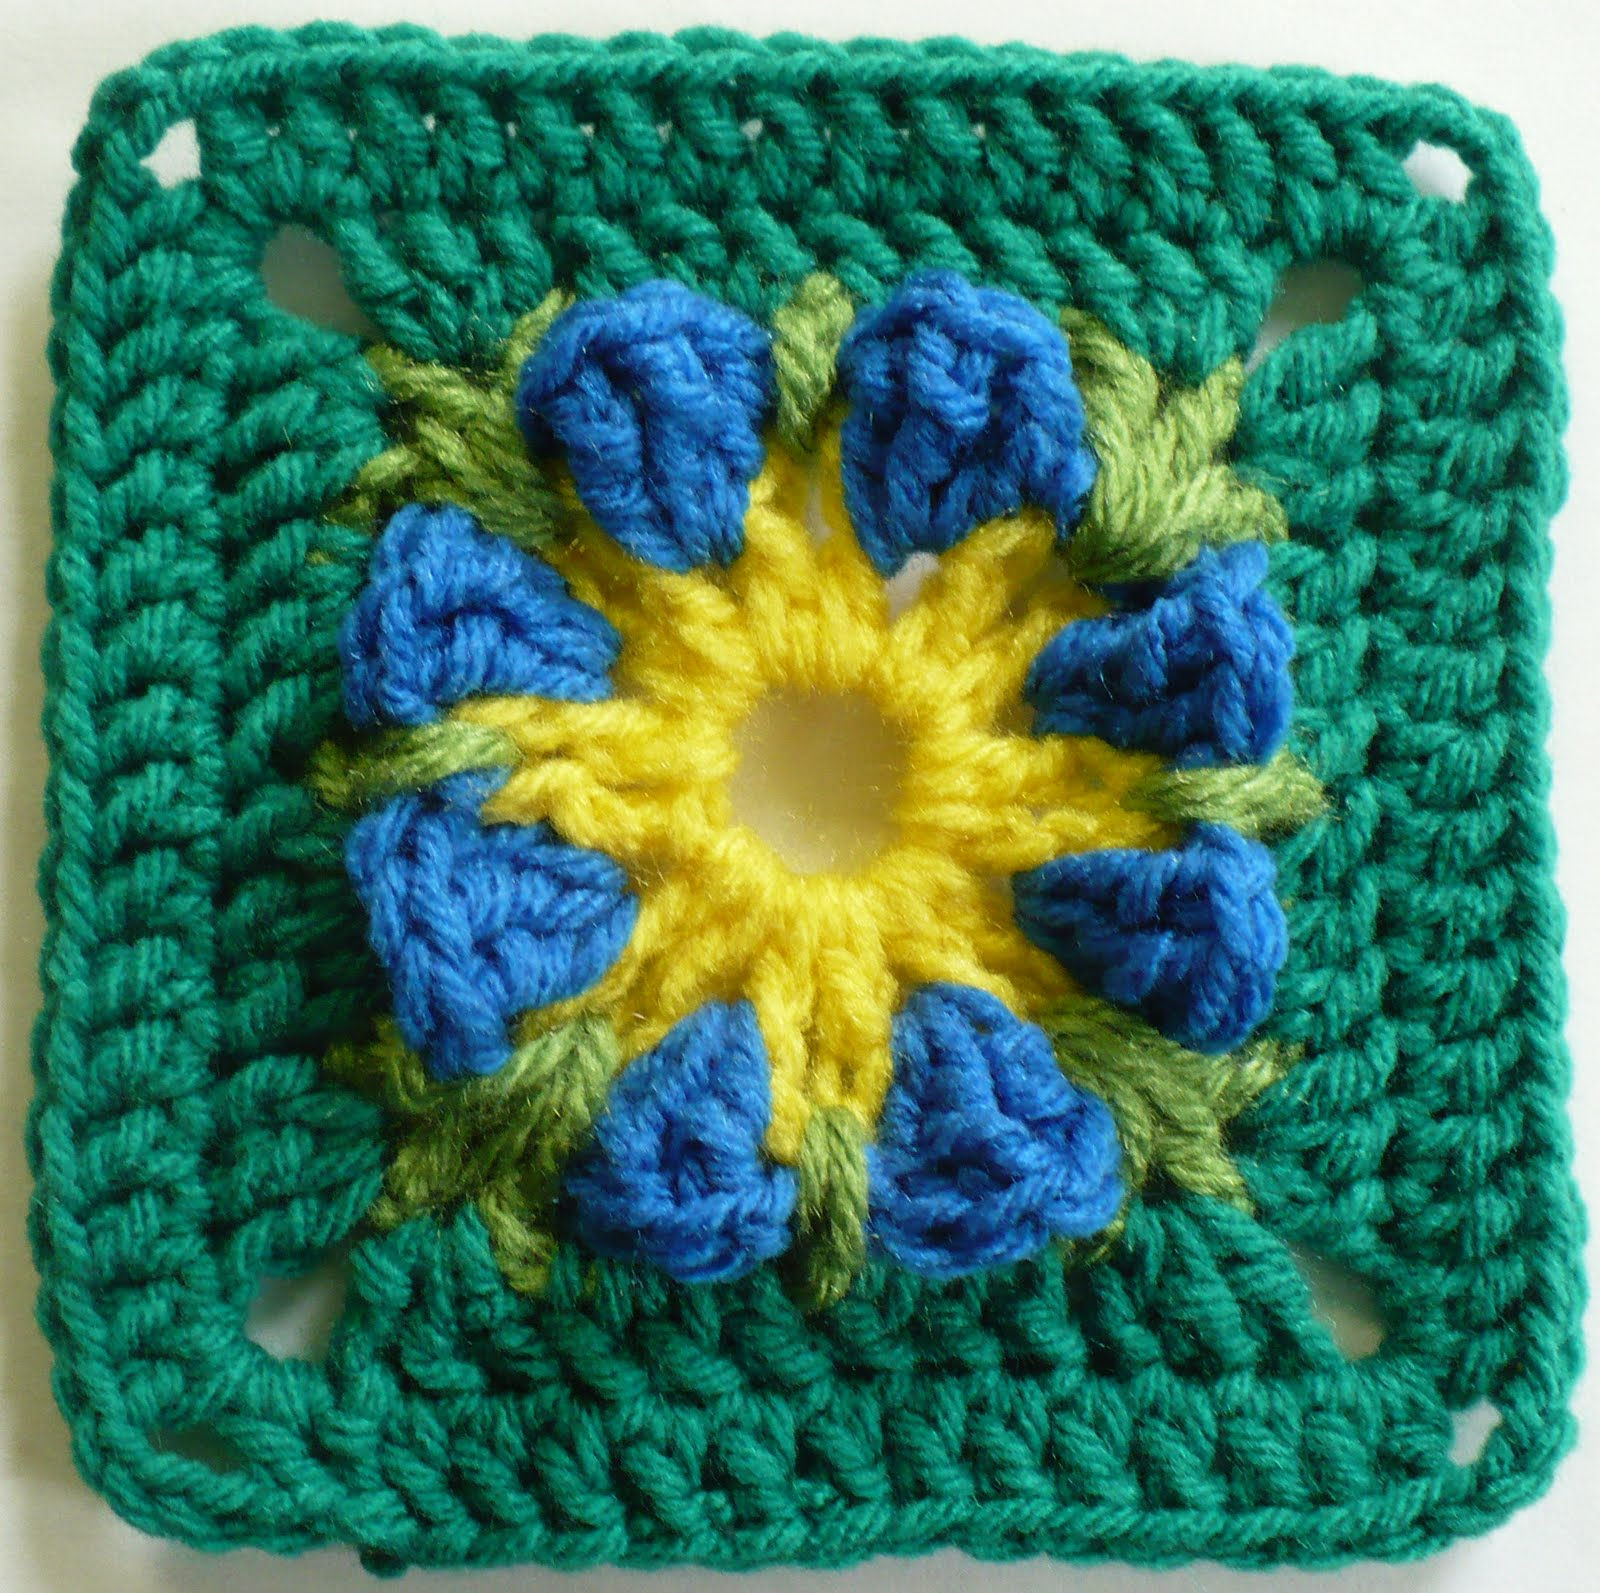 Free Crochet Pattern Of The Day : The Friendship Afghan Project: Pattern of the Day ...